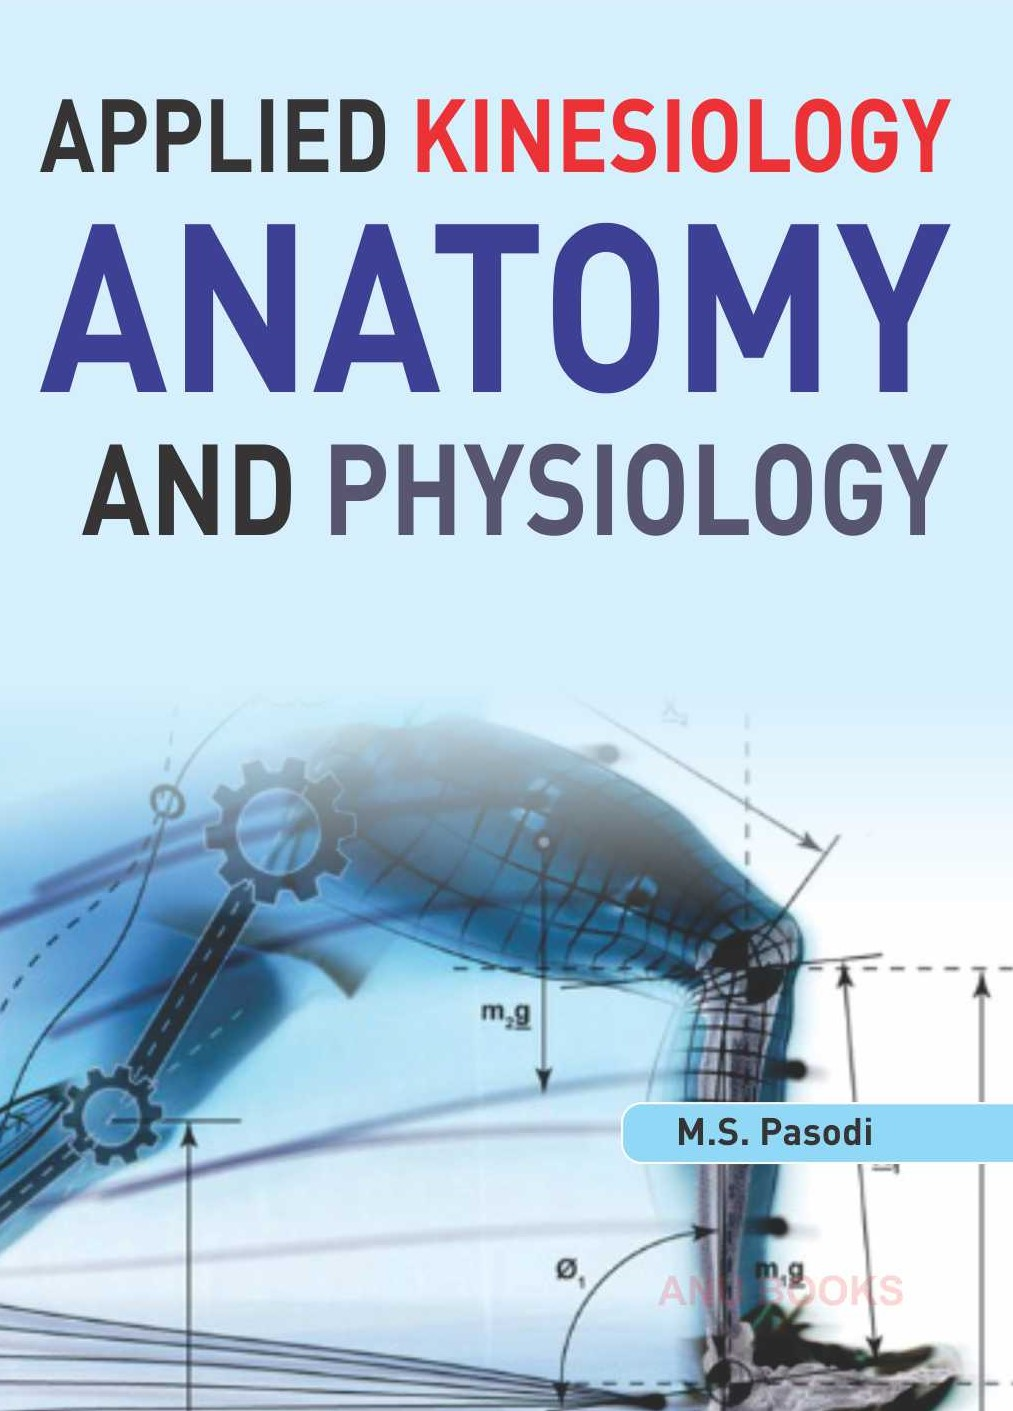 Applied Kinesiology Anatomy and Physiology – Anu Books